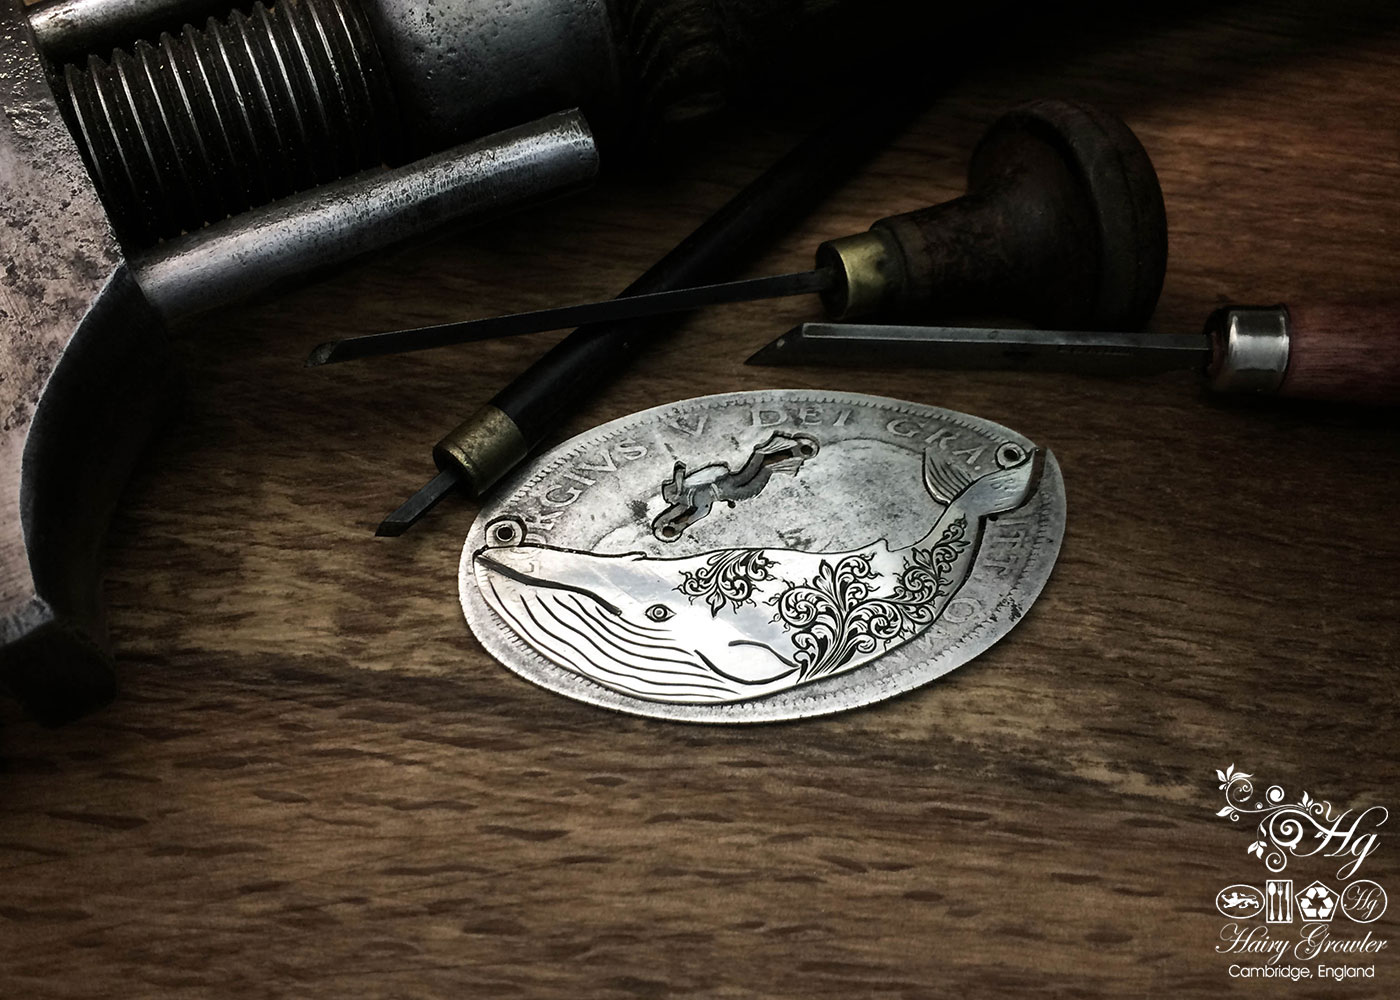 Handcrafted and upcycled sterling silver half crown coin leviathan whale necklace